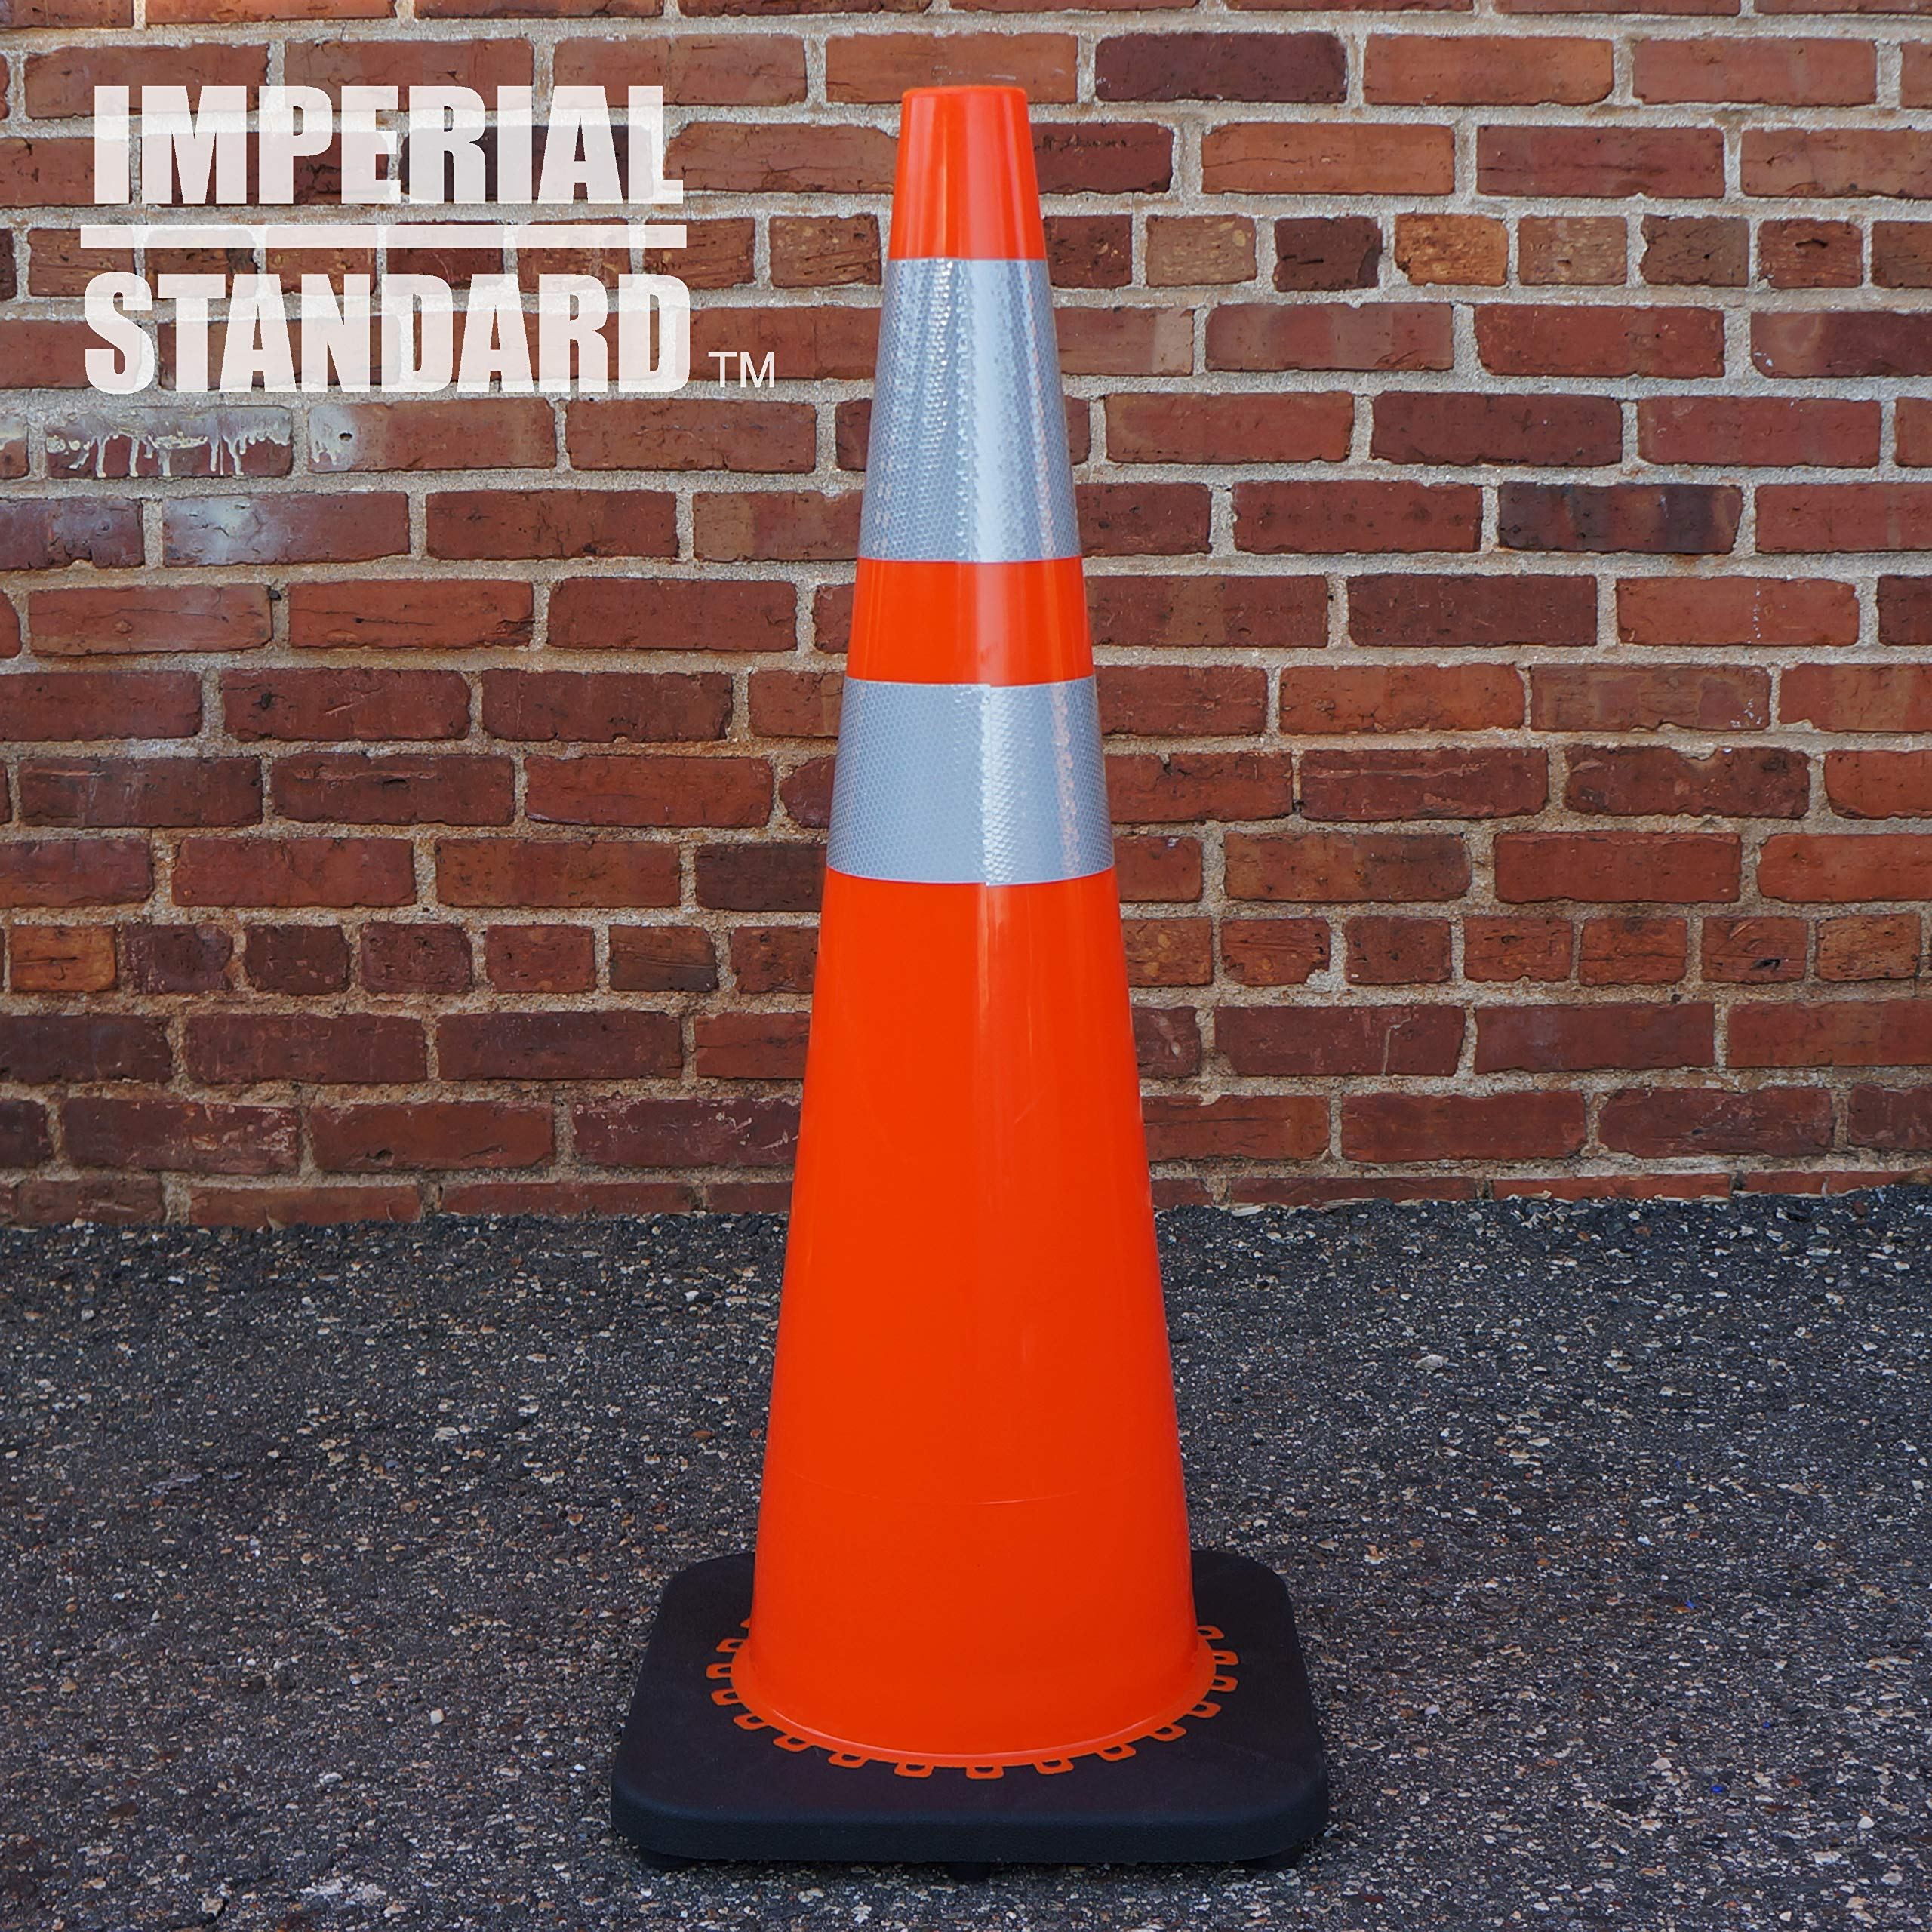 Traffic Cones - Safety Cones - 36'' Orange Cones with 2 Reflective Collars - Construction Cones - Road Cones - Parking Cones - Street Cone (4 pack) by Imperial Standard